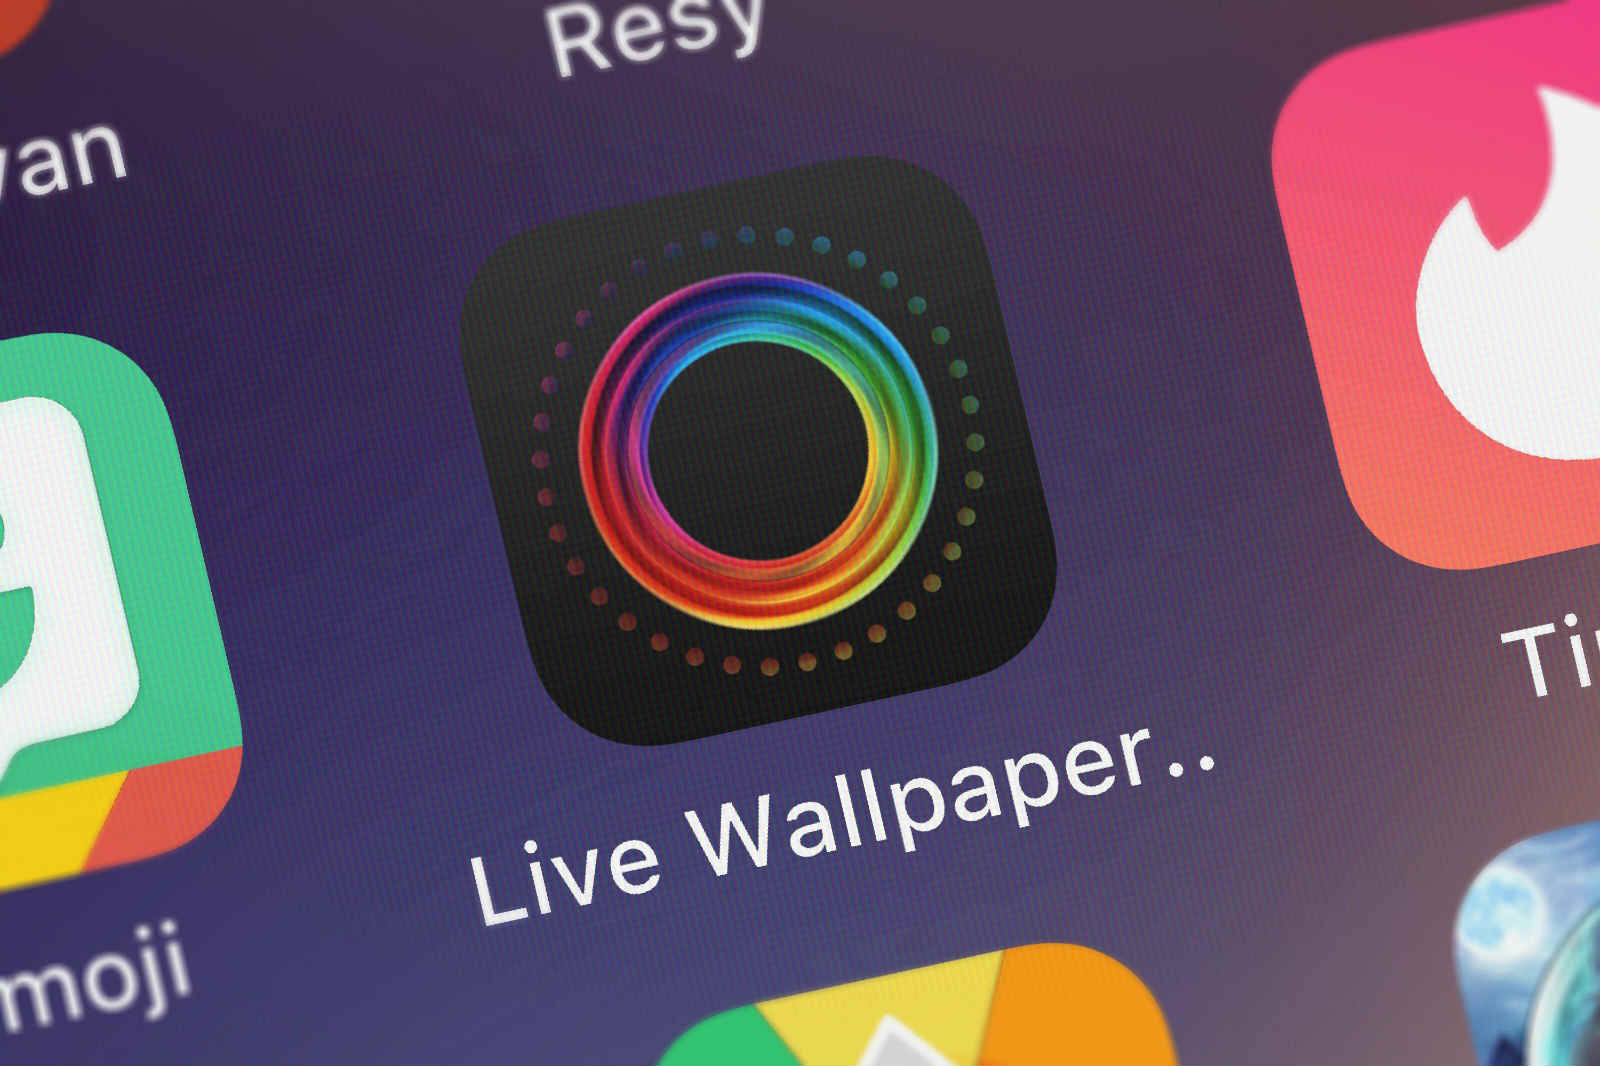 iPhone Wallpaper Live Fresh 12 Best Live Wallpaper Apps for iPhone Xs Xs Max 11 and 11   Top iphone wallpaper live Backgrounds   WallpaperAccess 1600x1066